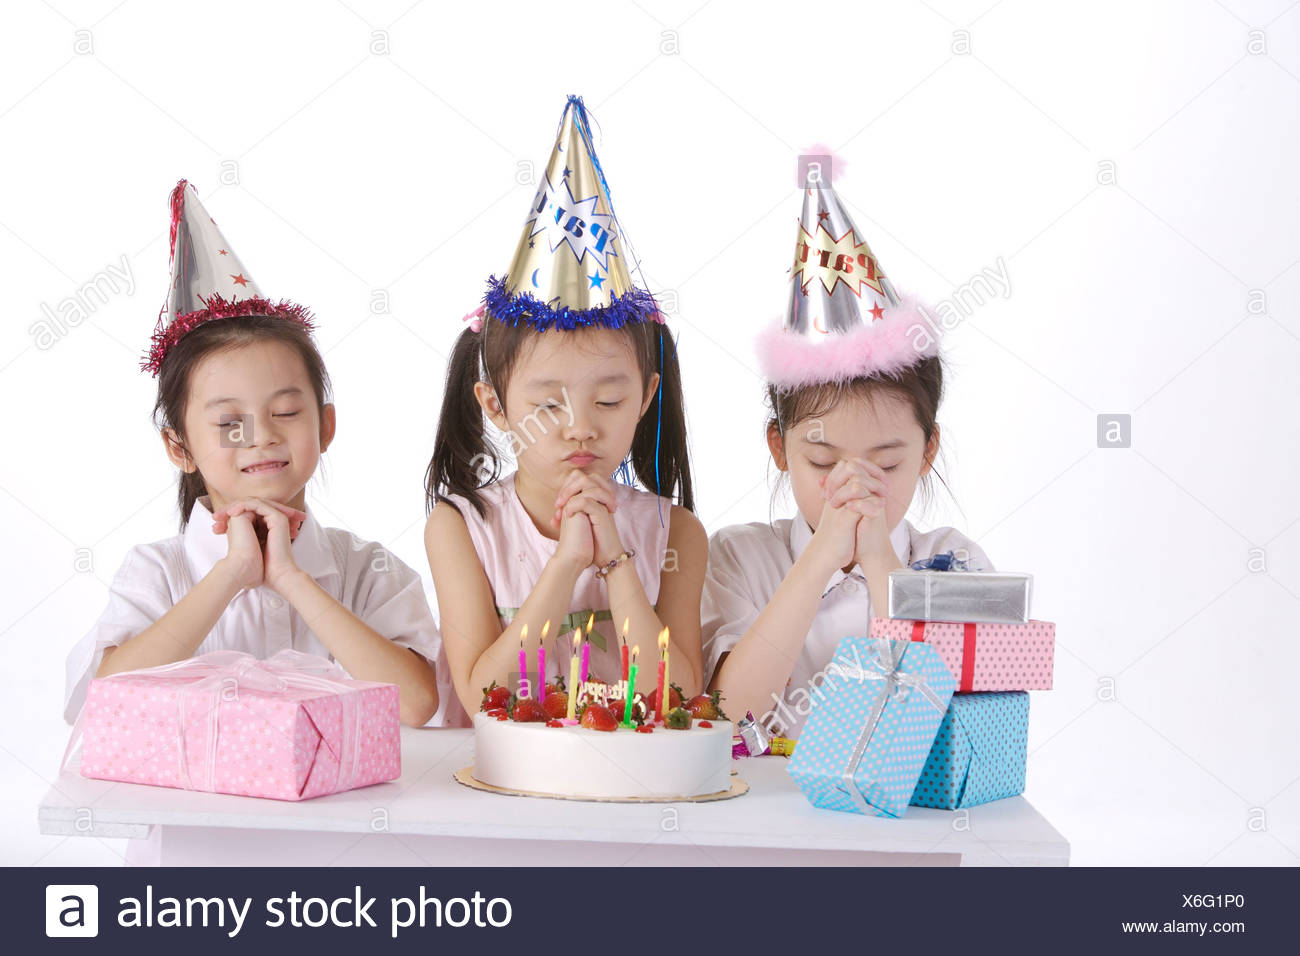 Marvelous Three Girls Making Wish Birthday Cake And Ts On Table Stock Personalised Birthday Cards Sponlily Jamesorg